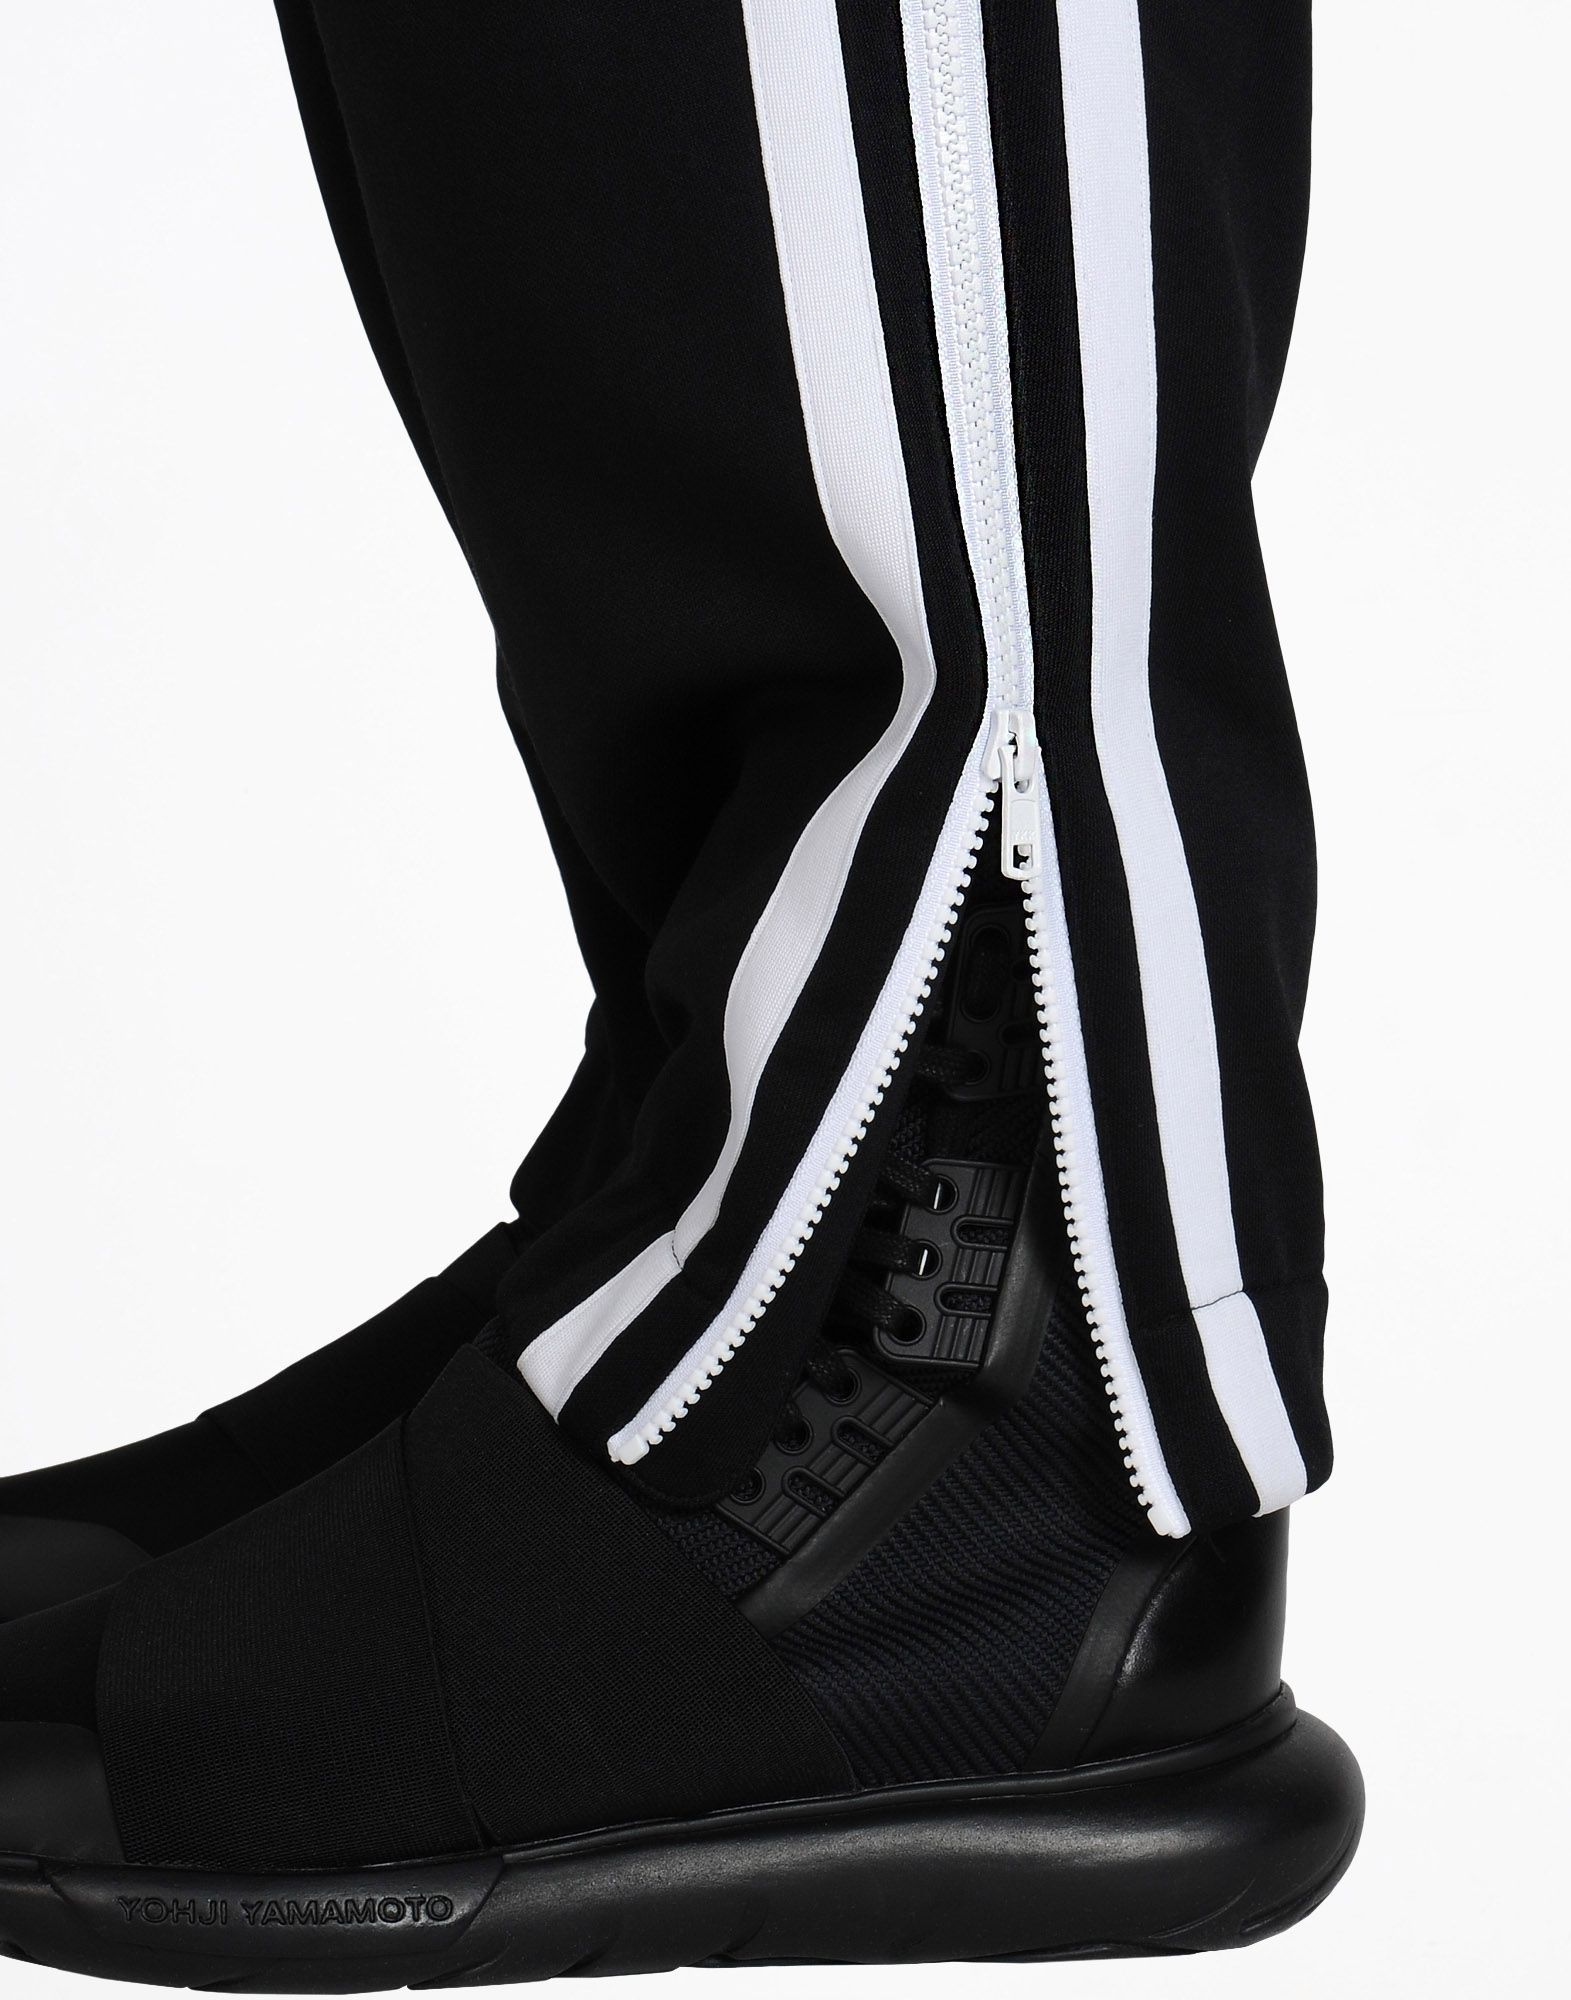 02288b813 Y-3 3-STRIPES TRACK PANT TROUSERS man Y-3 adidas